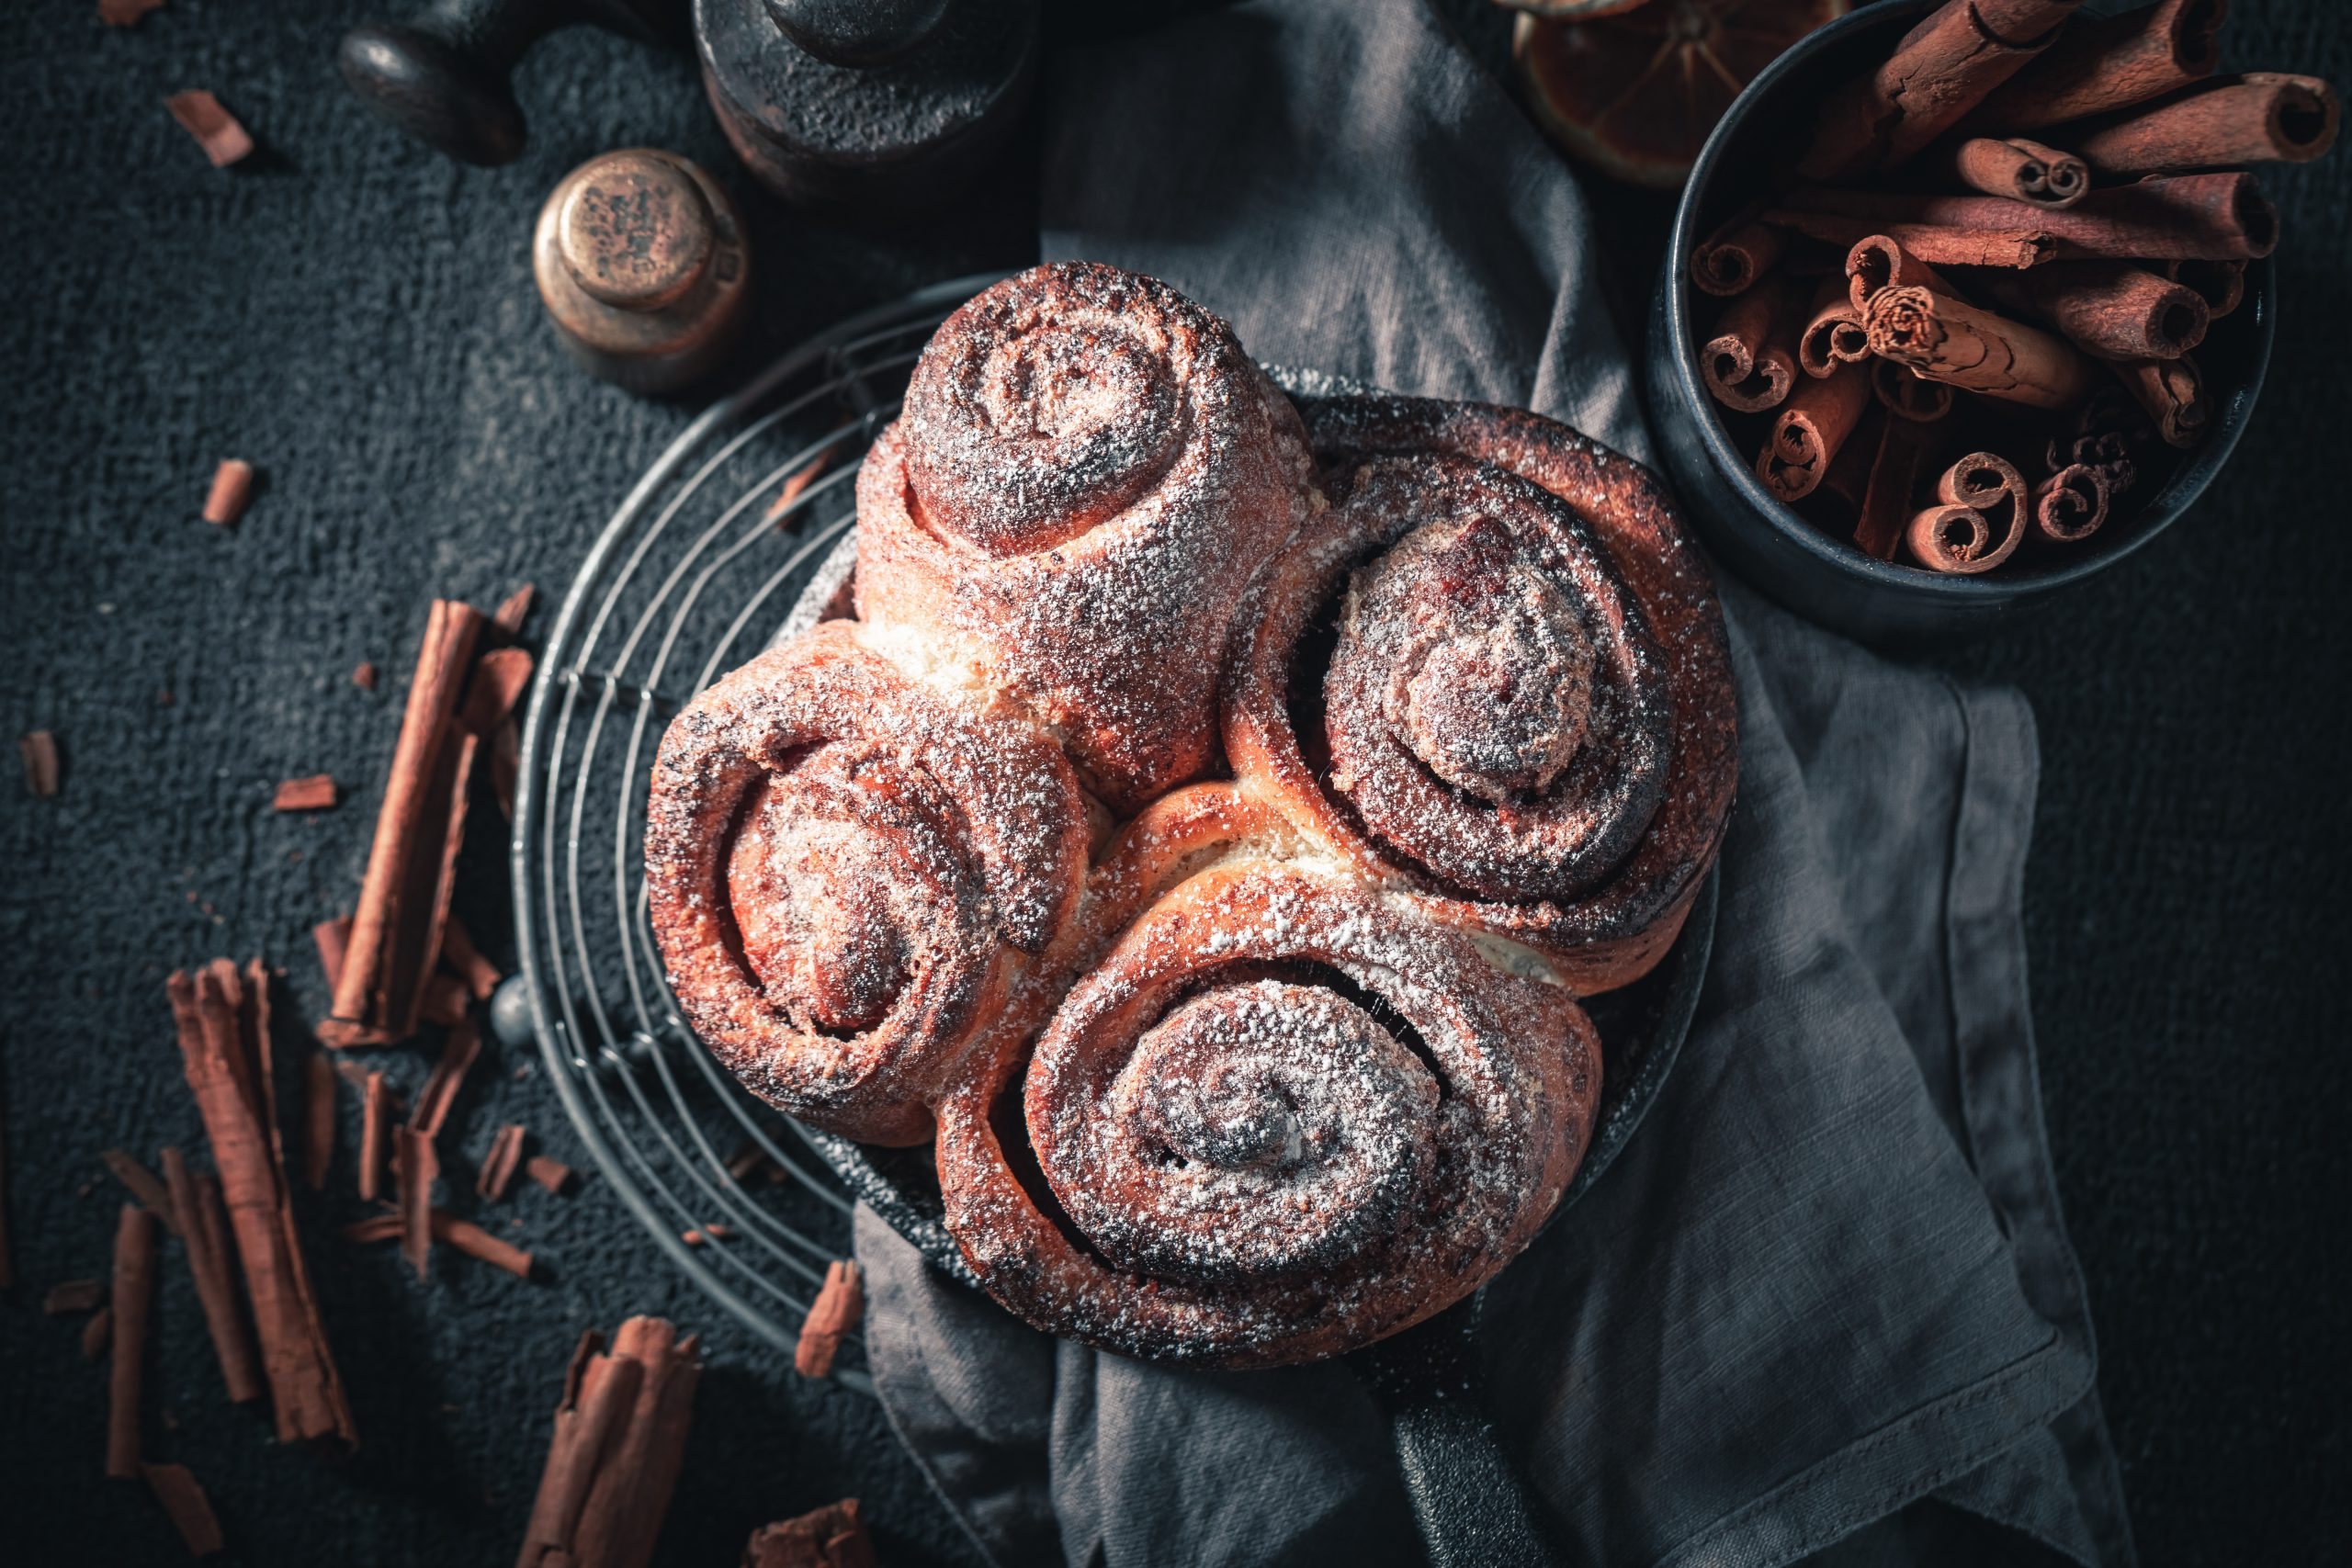 Cinnamon rolls on a plate, ready to be served.